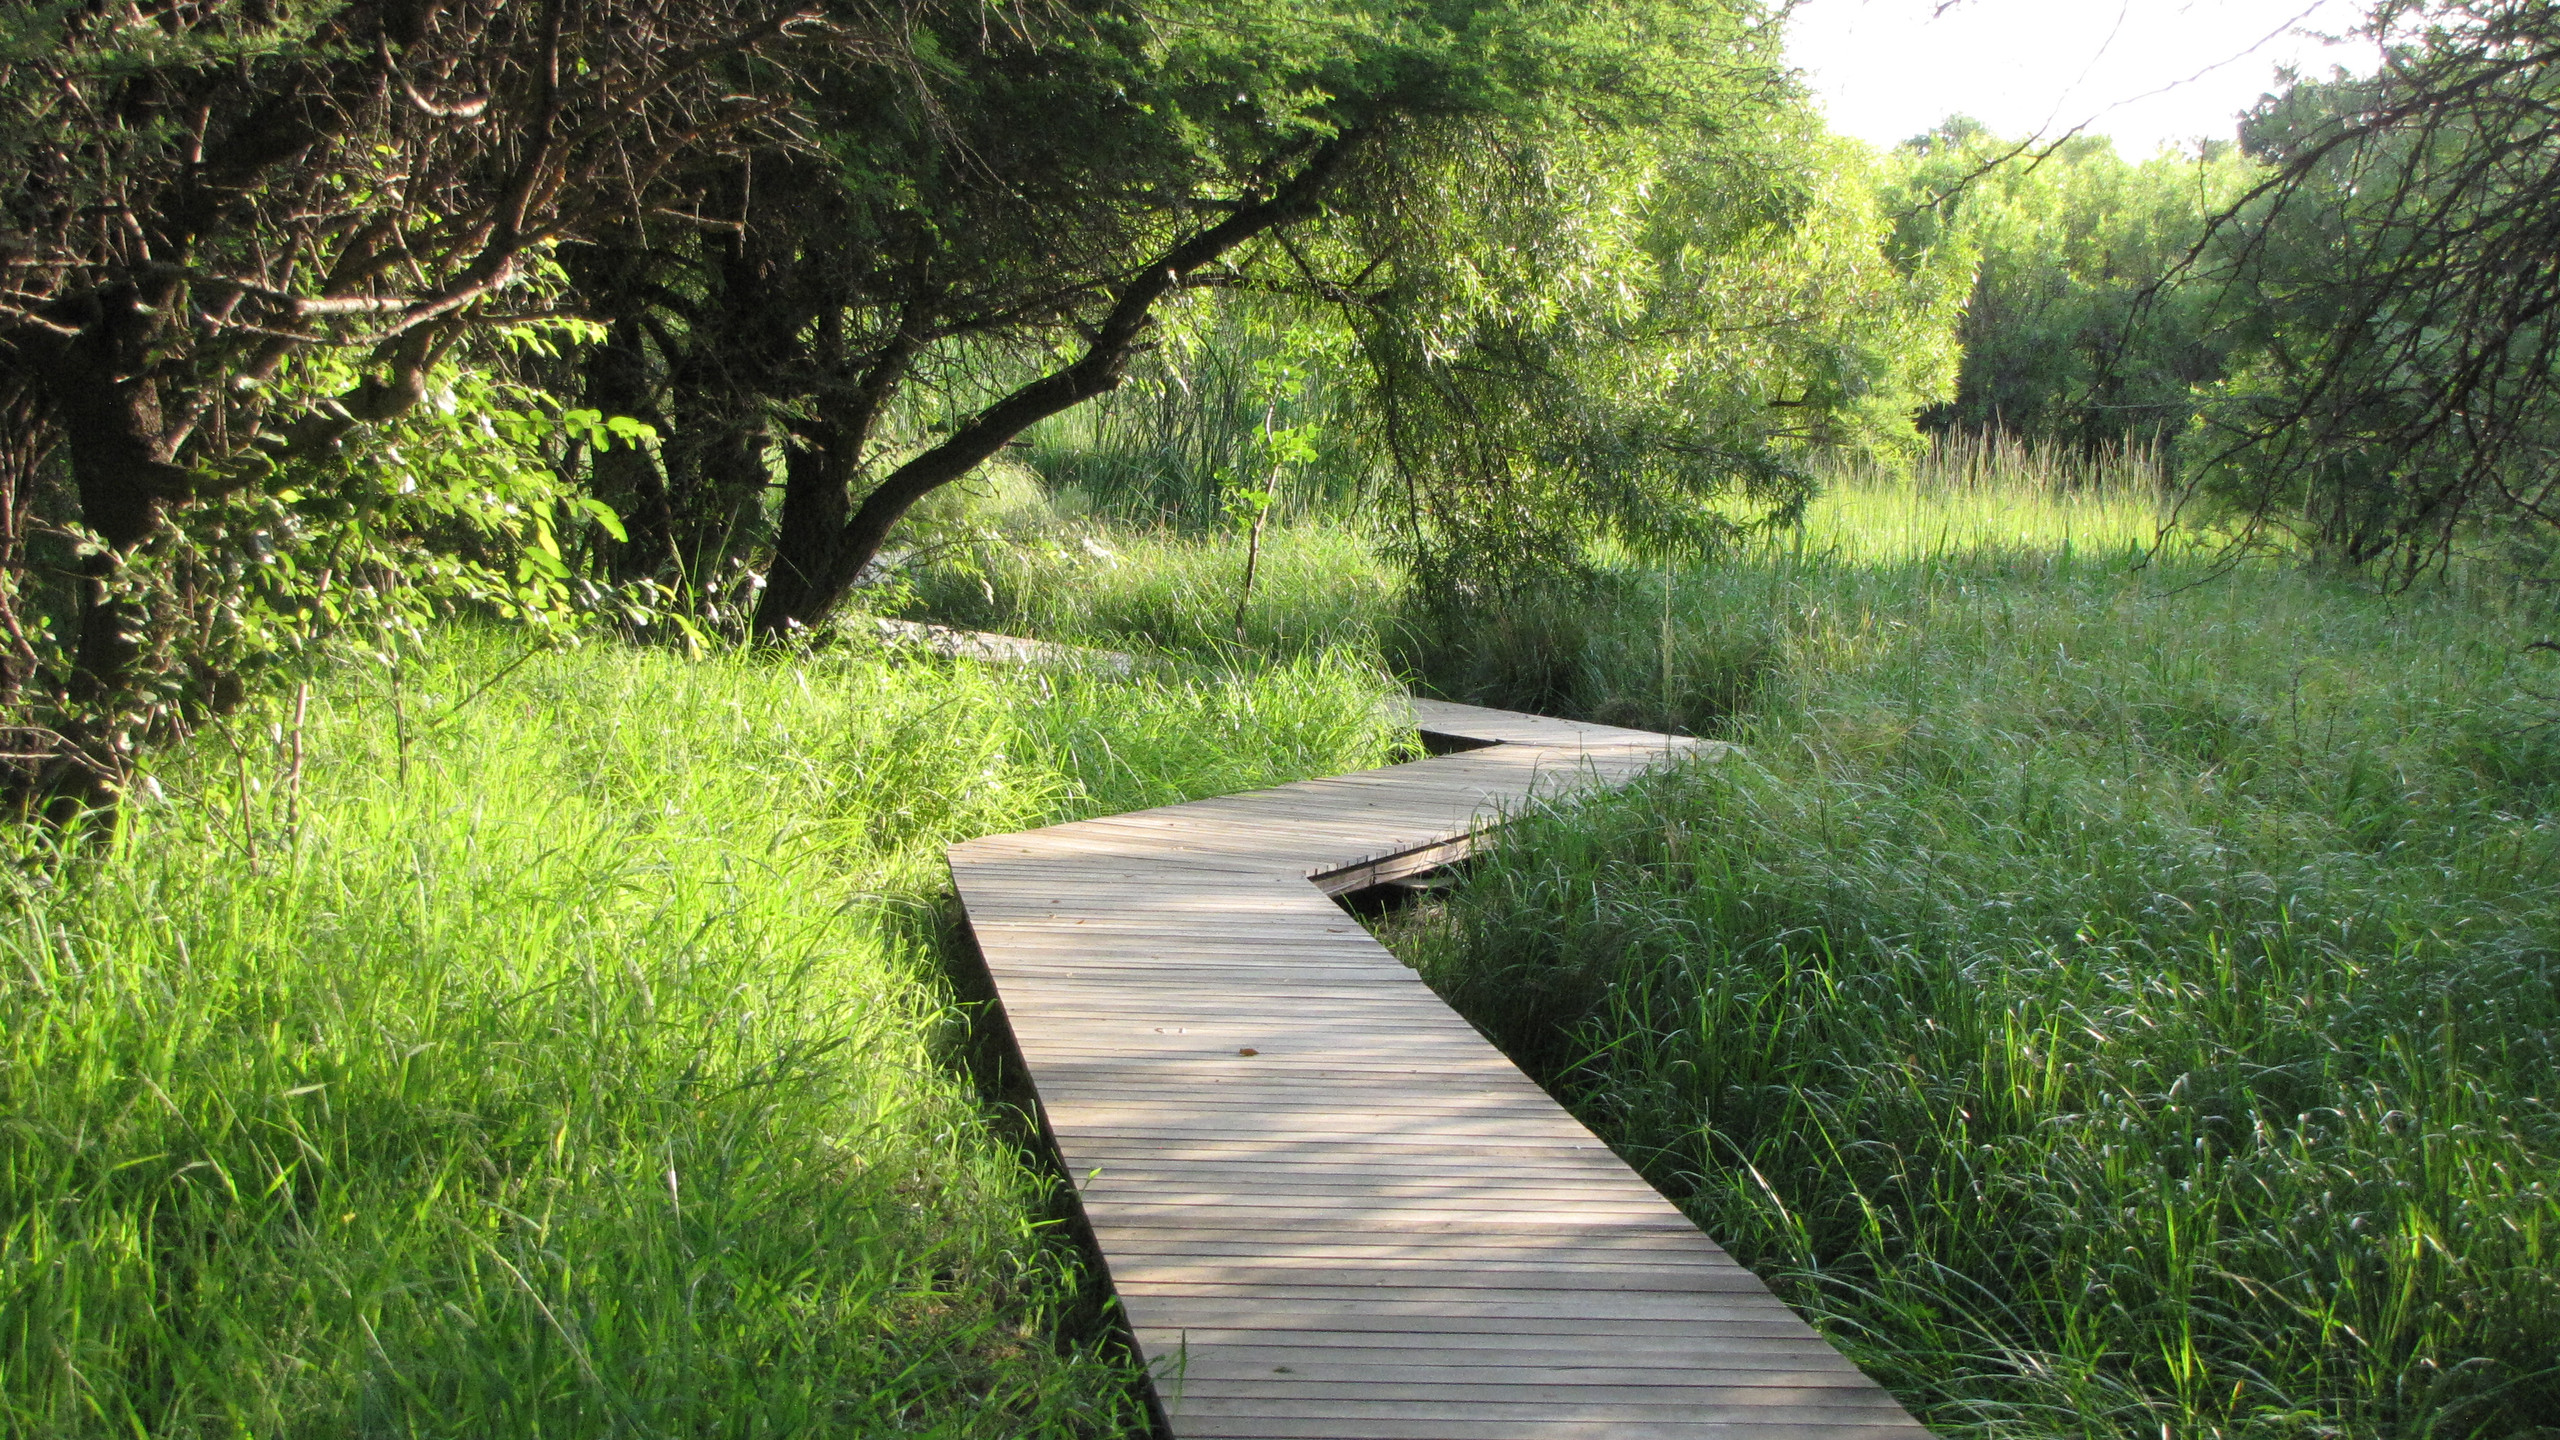 Walkway to Bliss Body Spa at Dikhololo resort, North West Province